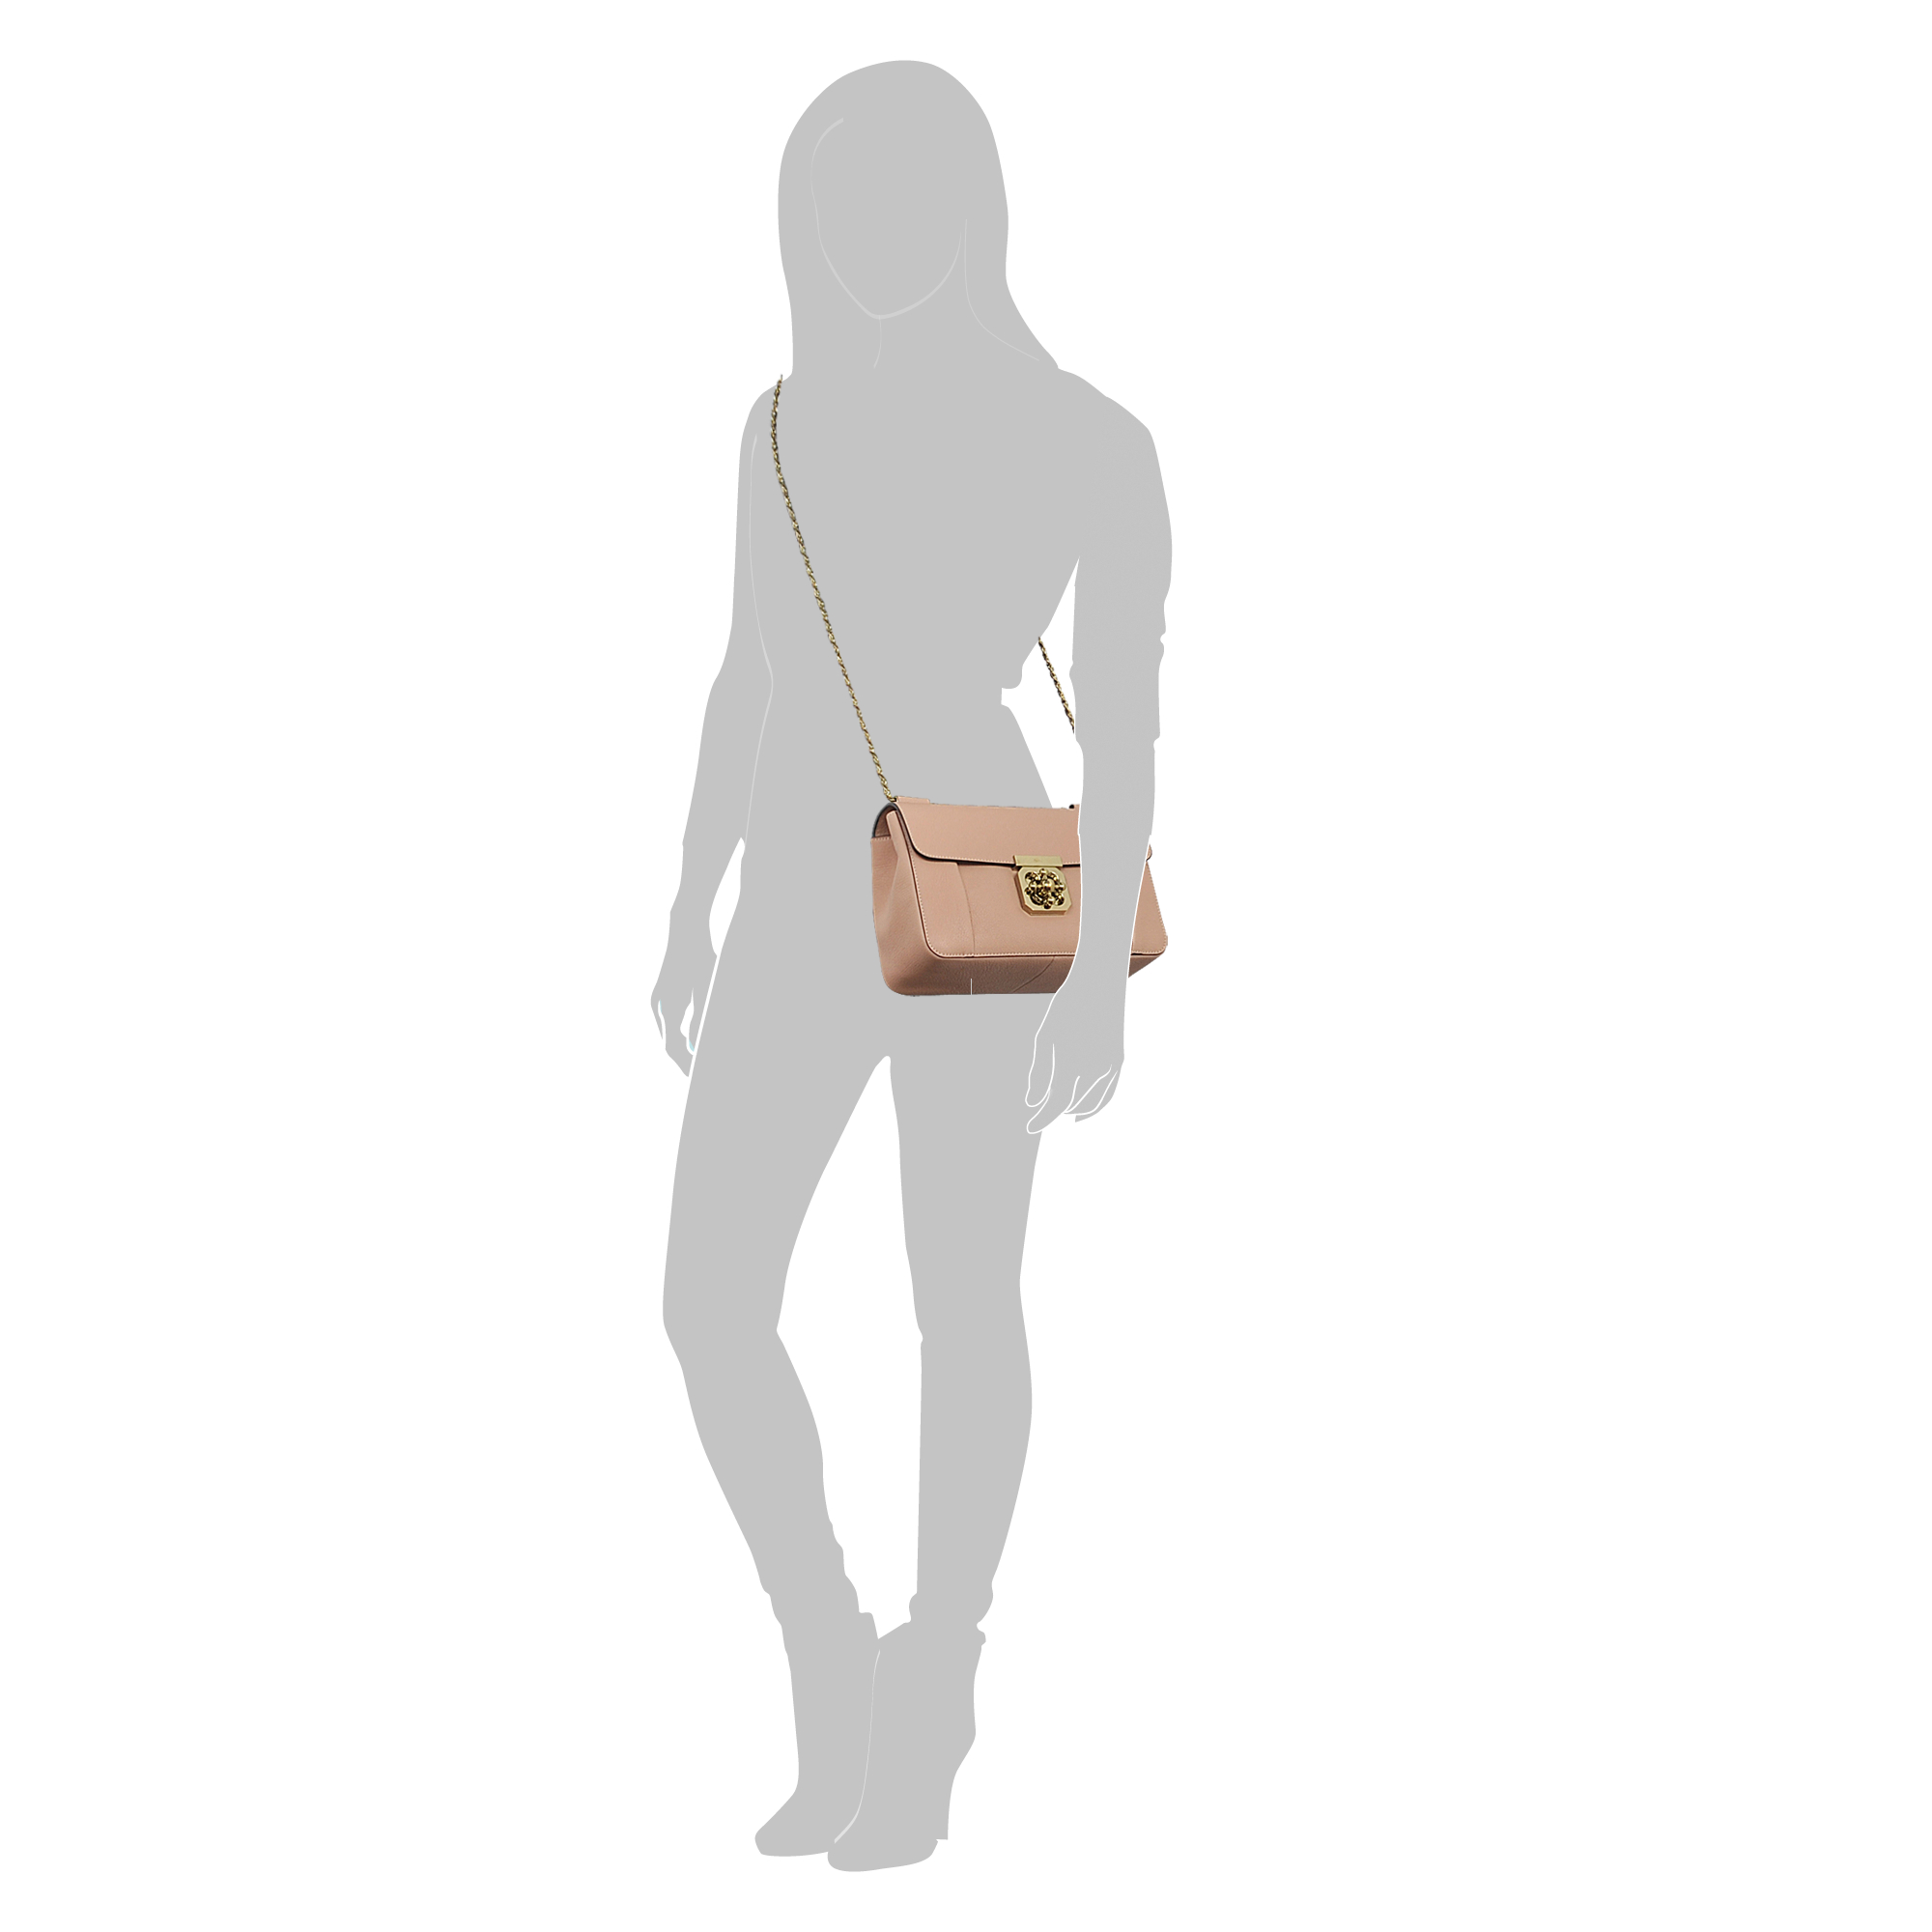 chloe satchel bag - Chlo�� Elsie Medium Shoulder Bag in Beige | Lyst